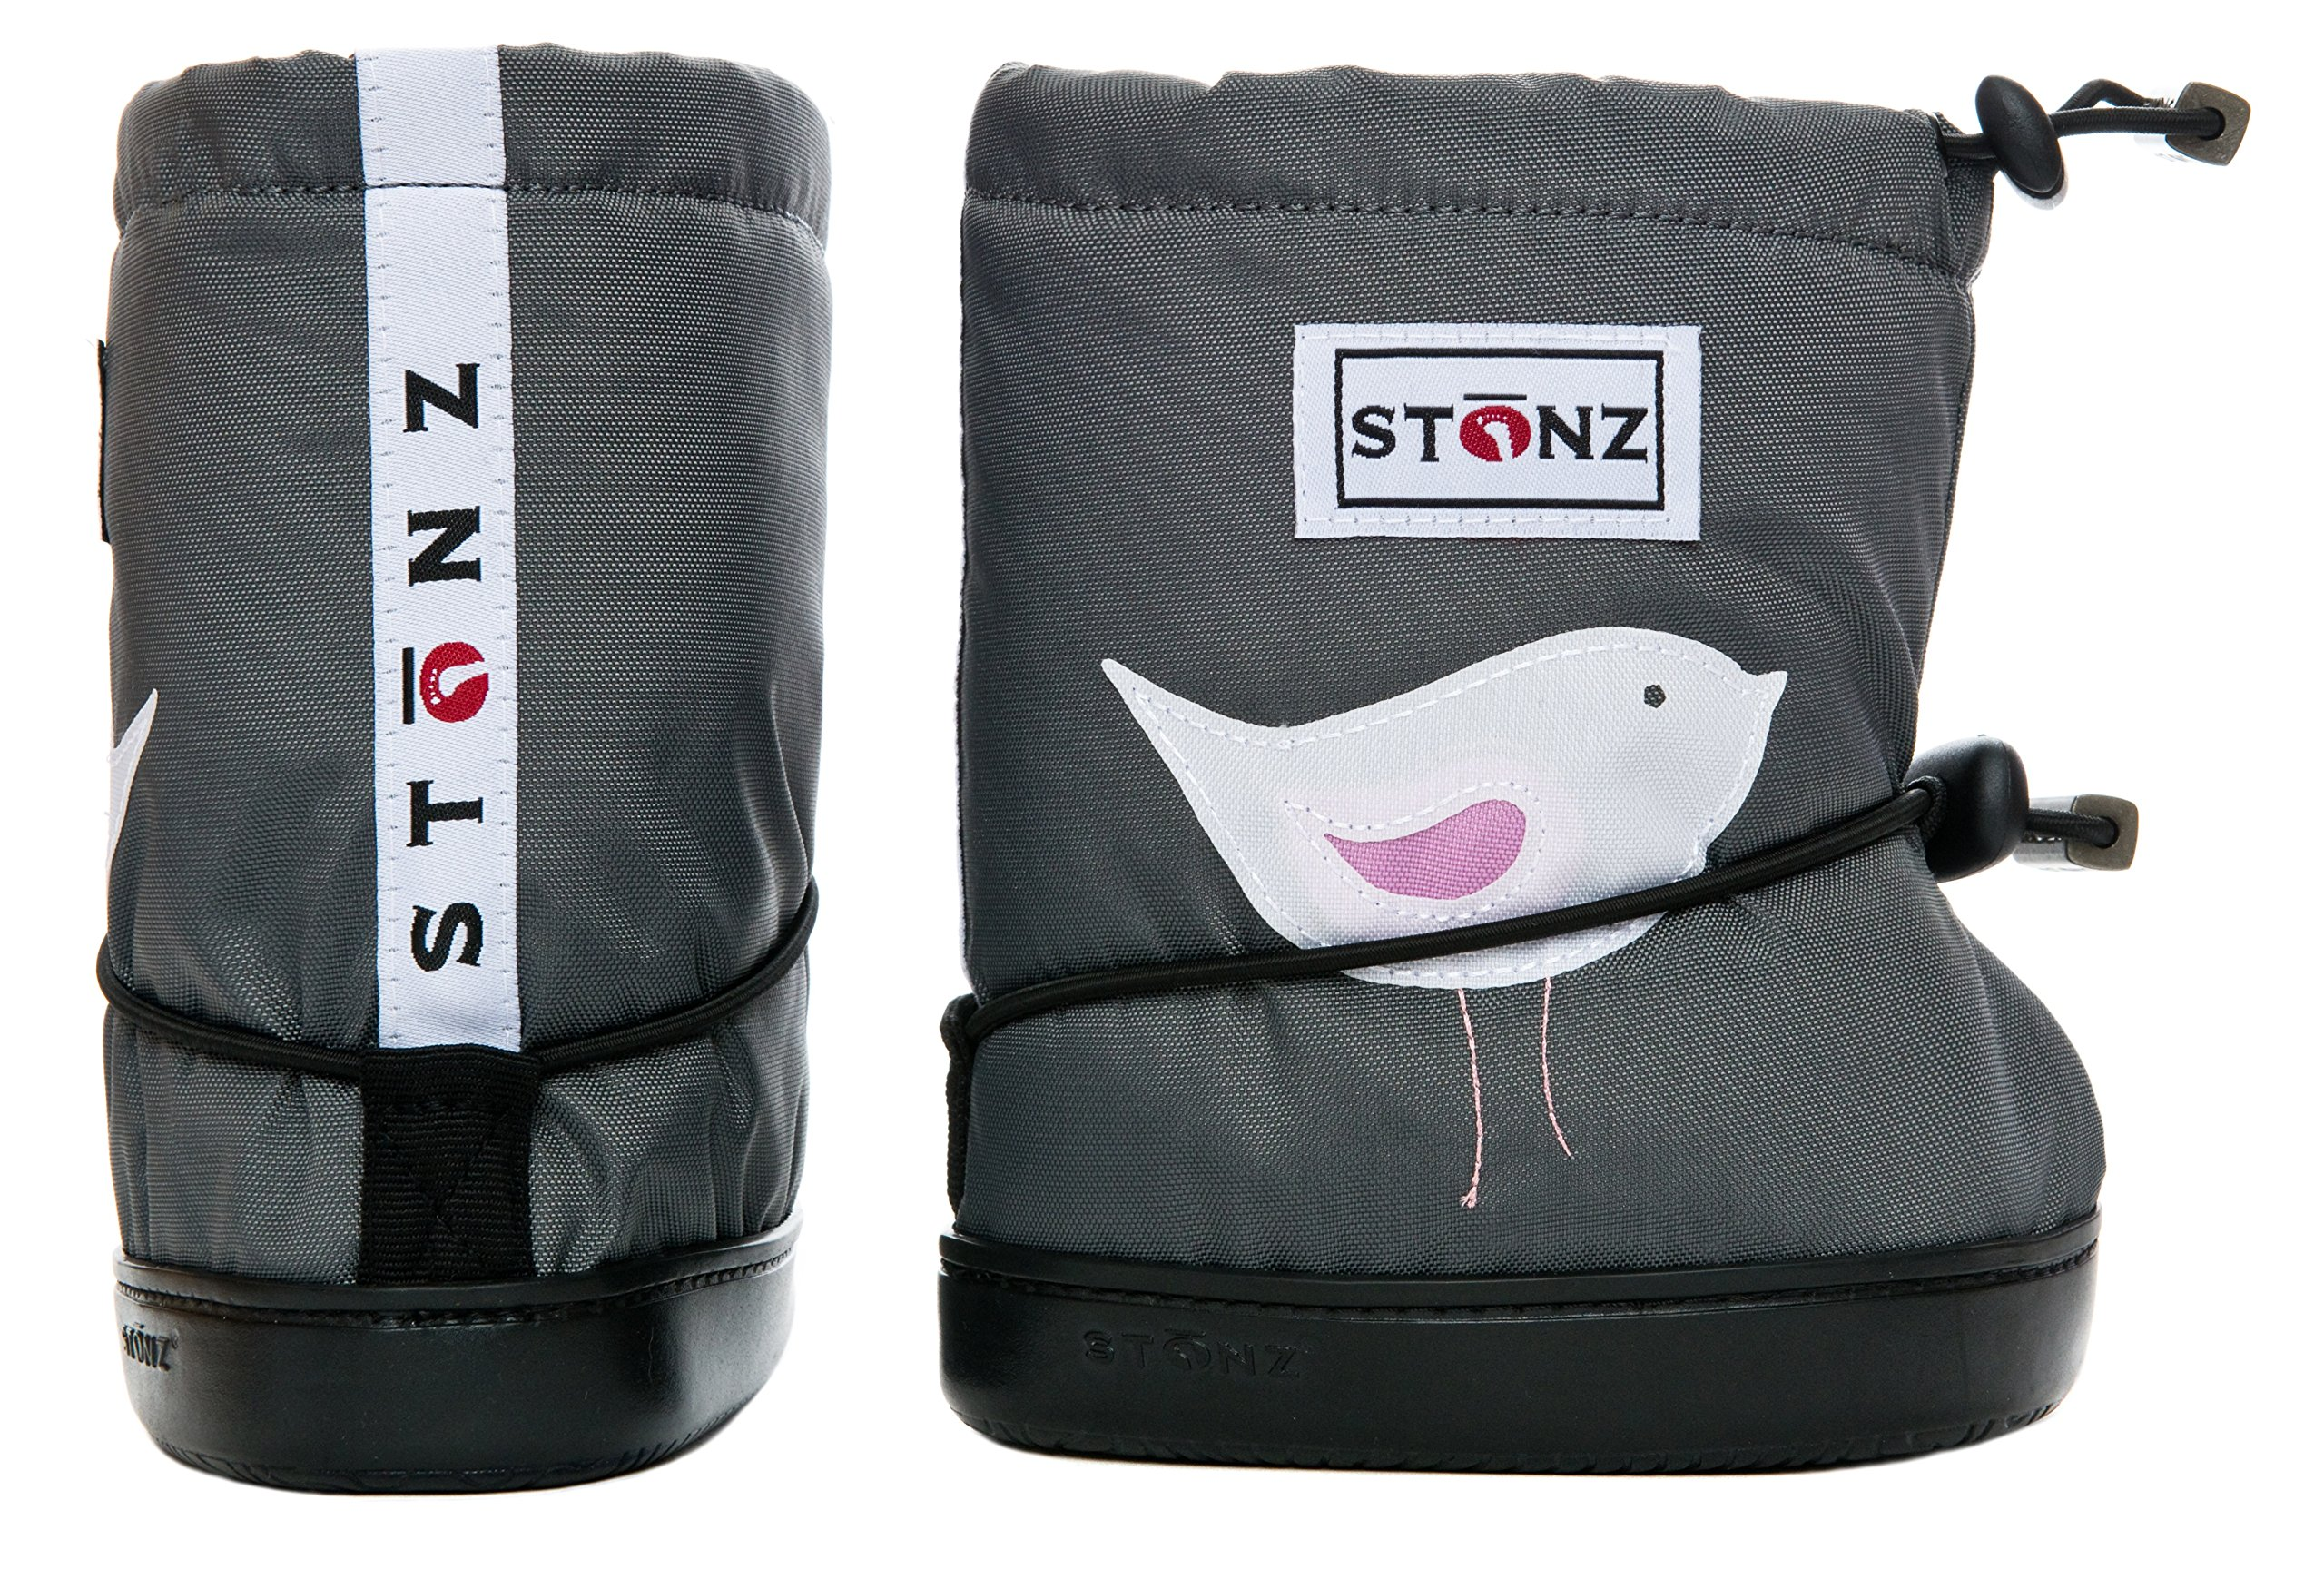 Stonz Three Season Stay-On Baby Booties, for Bare Feet Or Shoes, for Mild Or Cold Snow Weather, Bird - Grey PLUSfoam Medium by Stonz